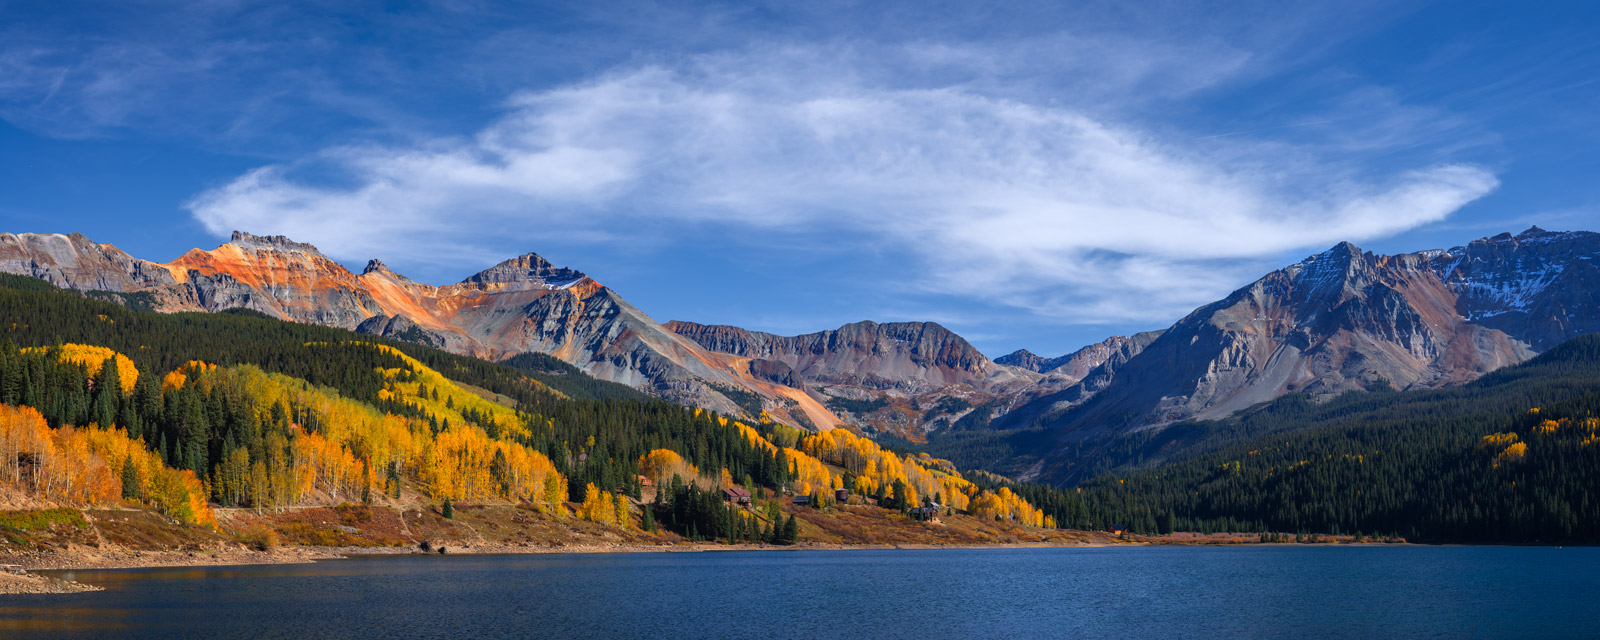 A Limited Edition, Fine Art photograph of a mountain scene behind Trout Lake in the San Juan Mountains of Southwest Colorado....